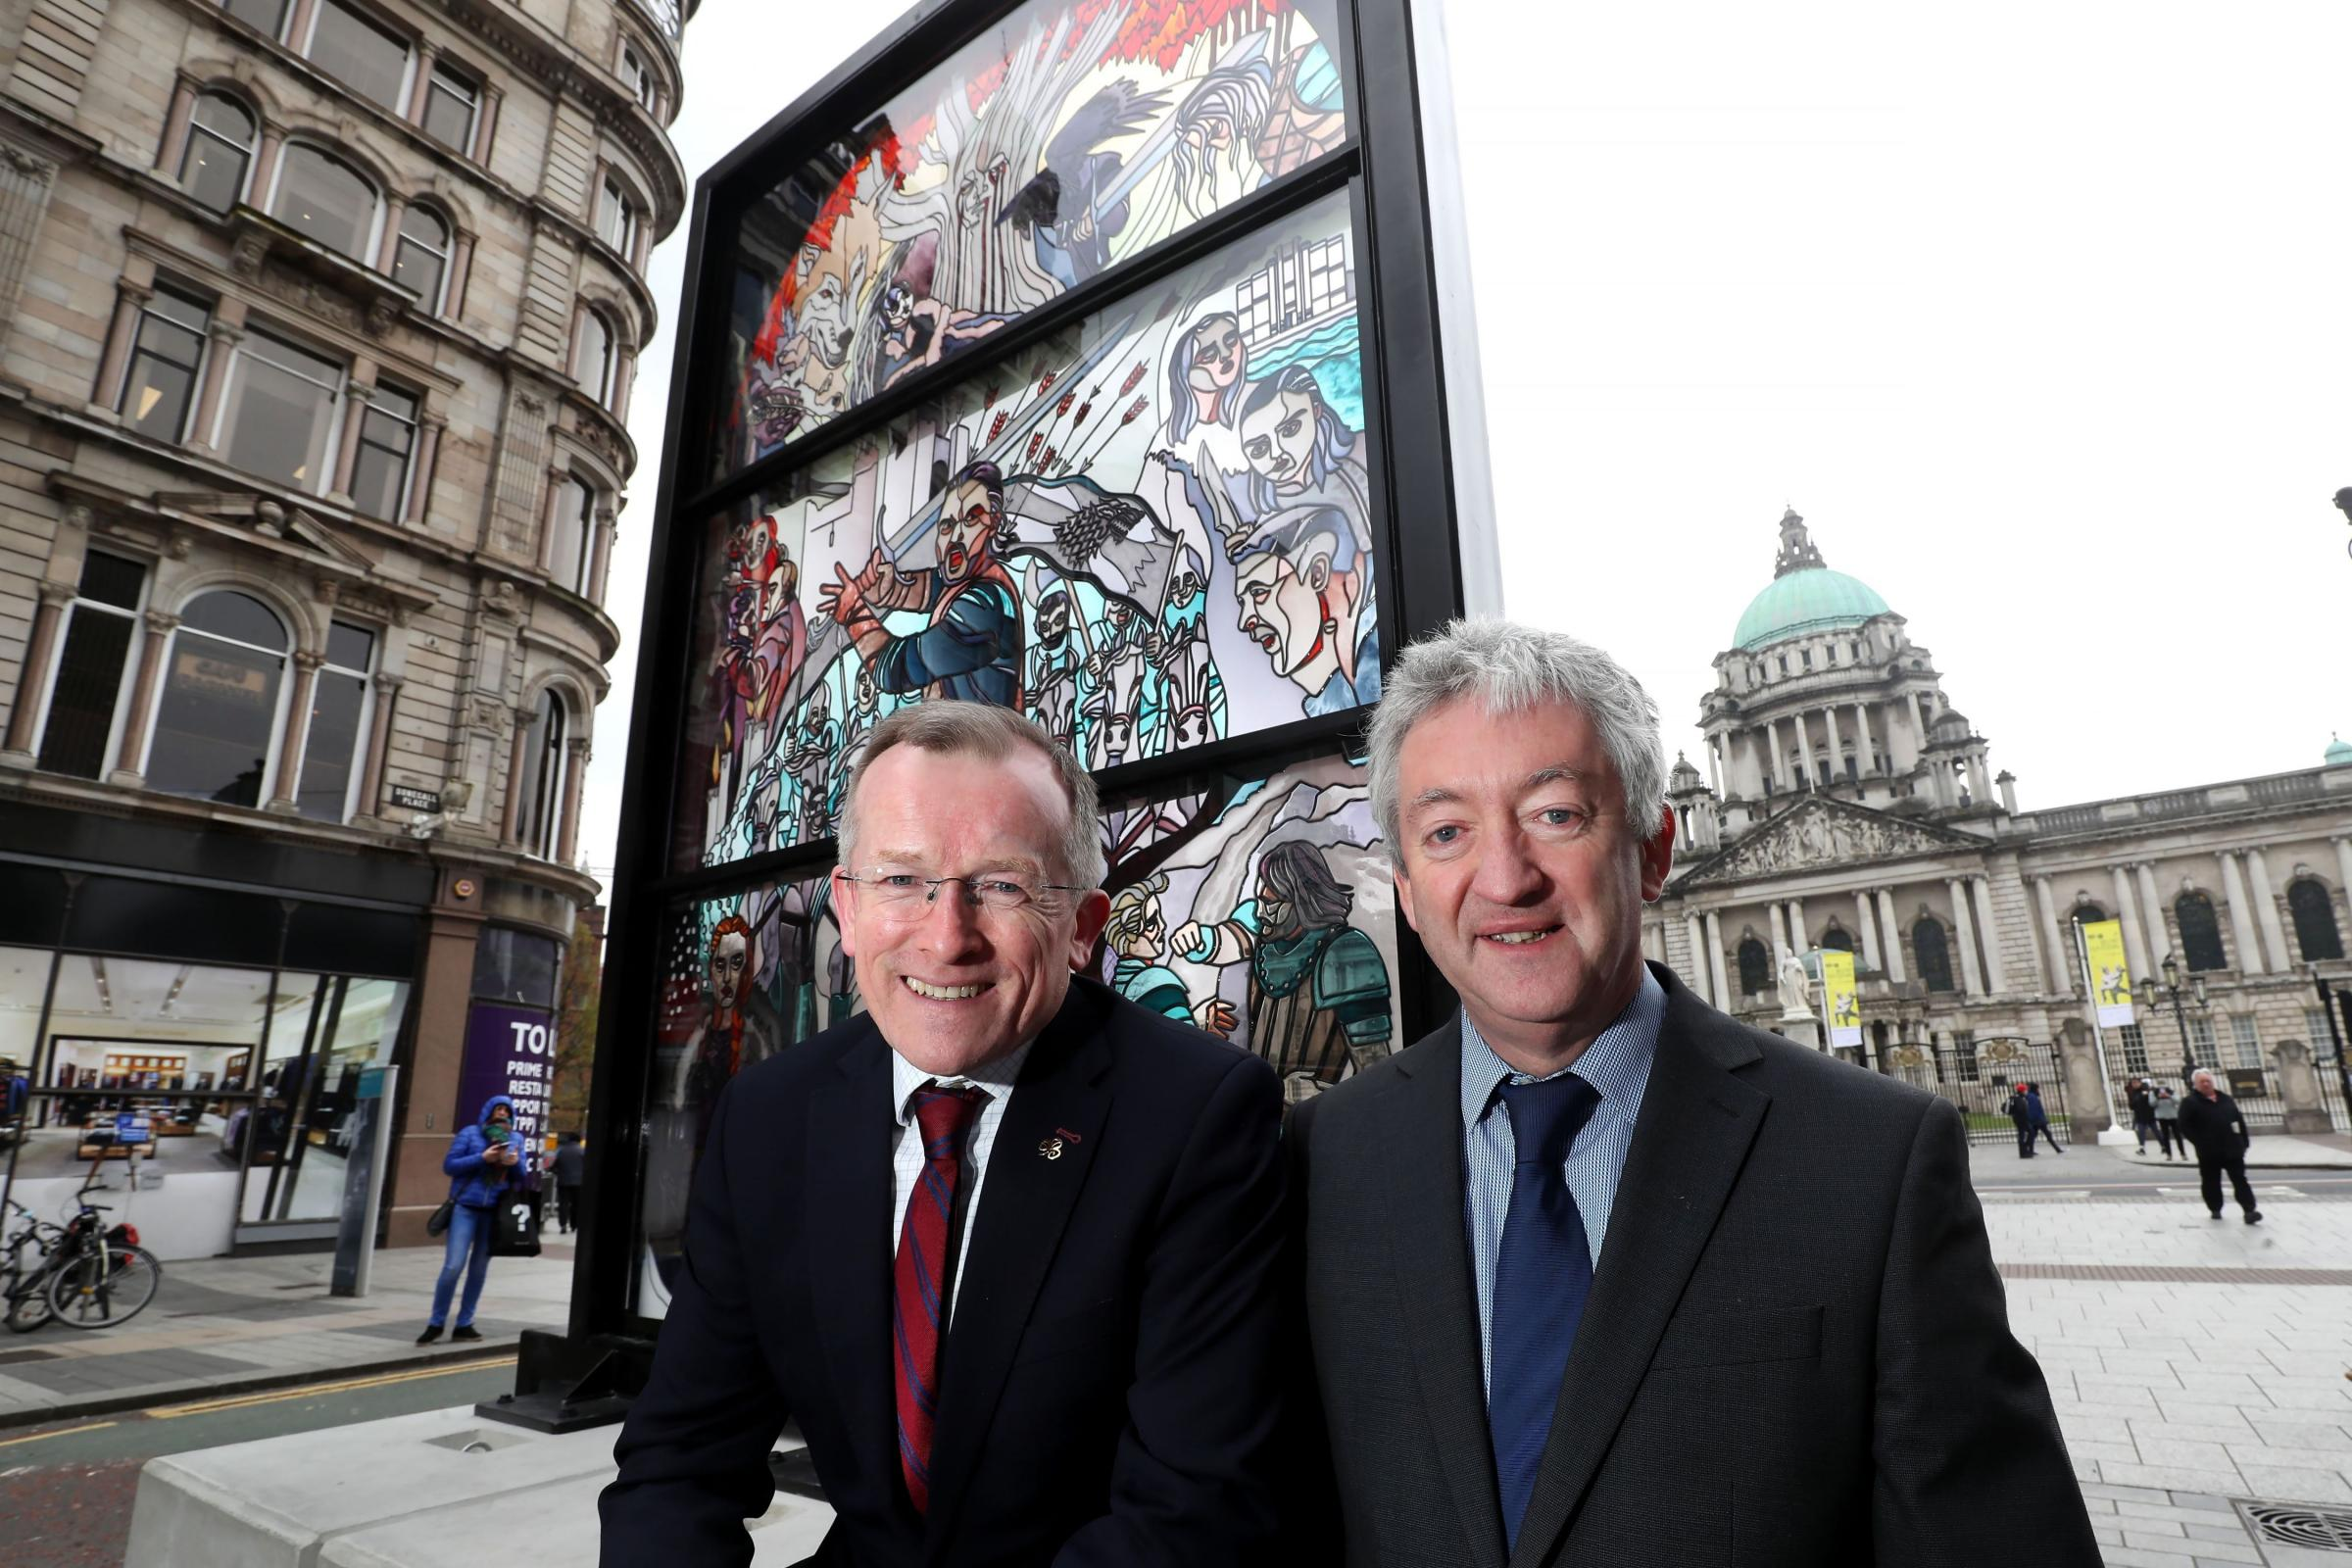 A giant stained glass Game Of Thrones window was unveiled opposite the main entrance to Belfast City Hall